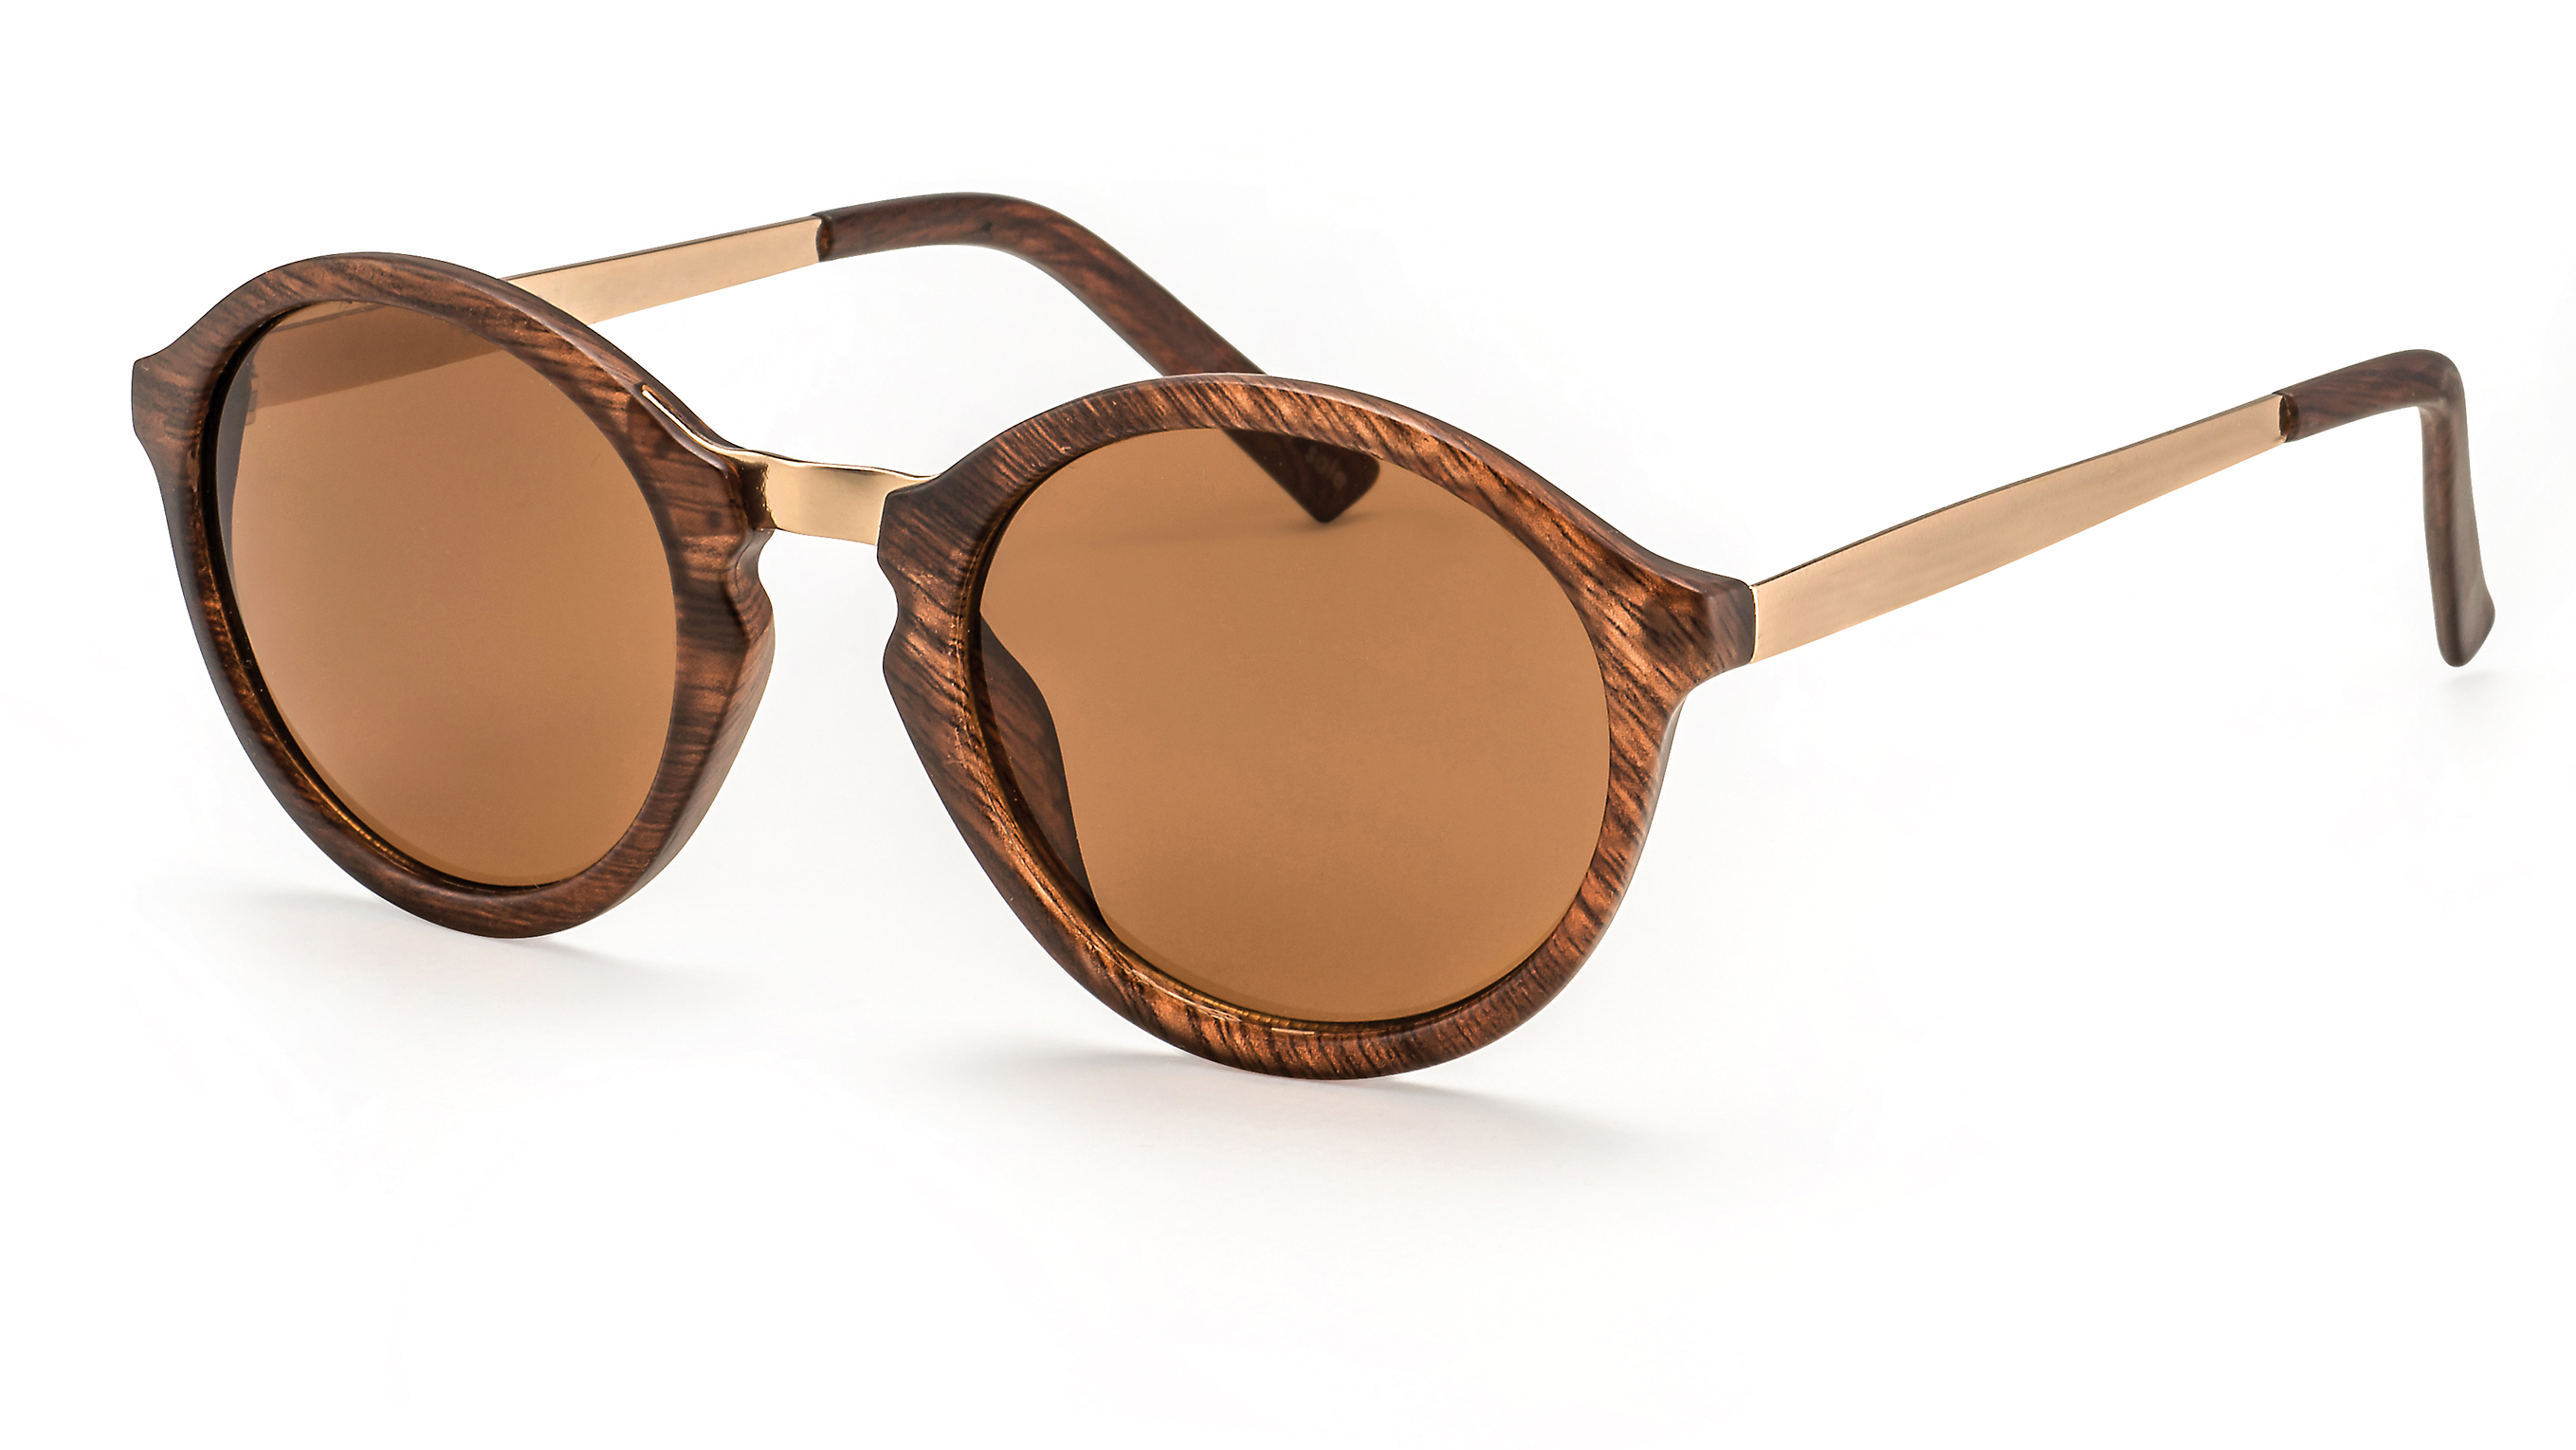 Main view round wood sunglasses F3001119